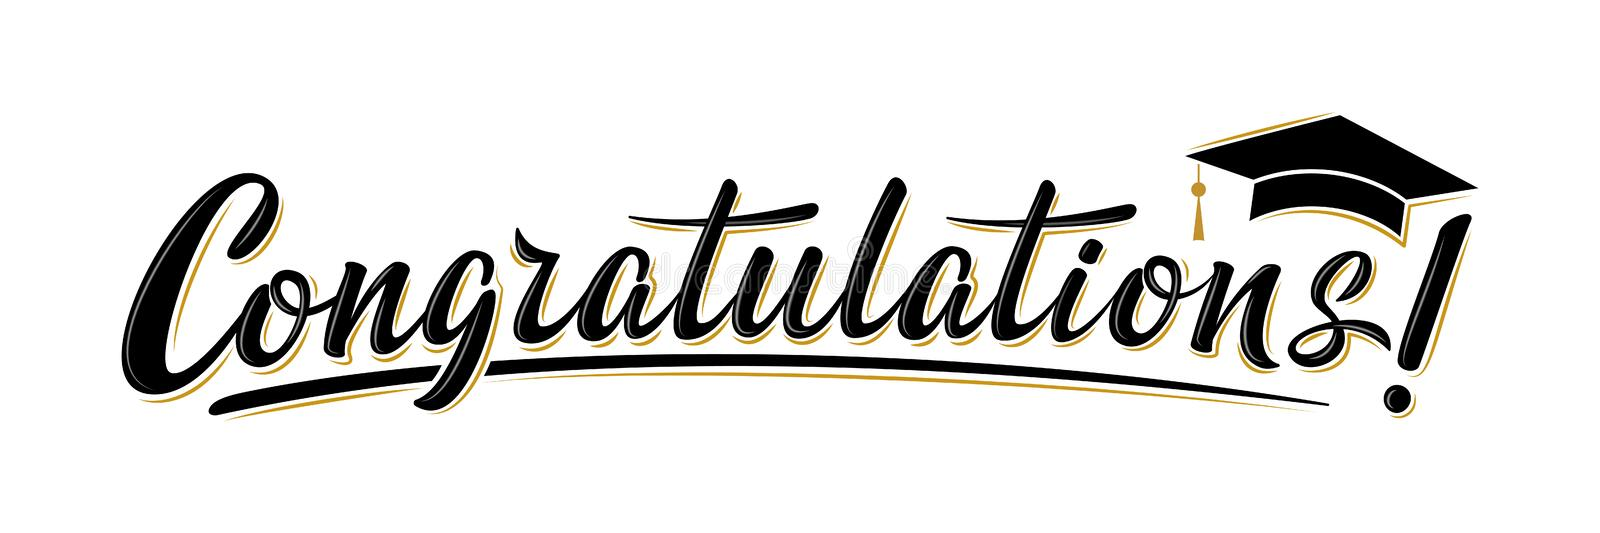 Congratulations! greeting sign for graduation party in university, school, academy. Handwritten brush lettering with academic cap. Vector design for